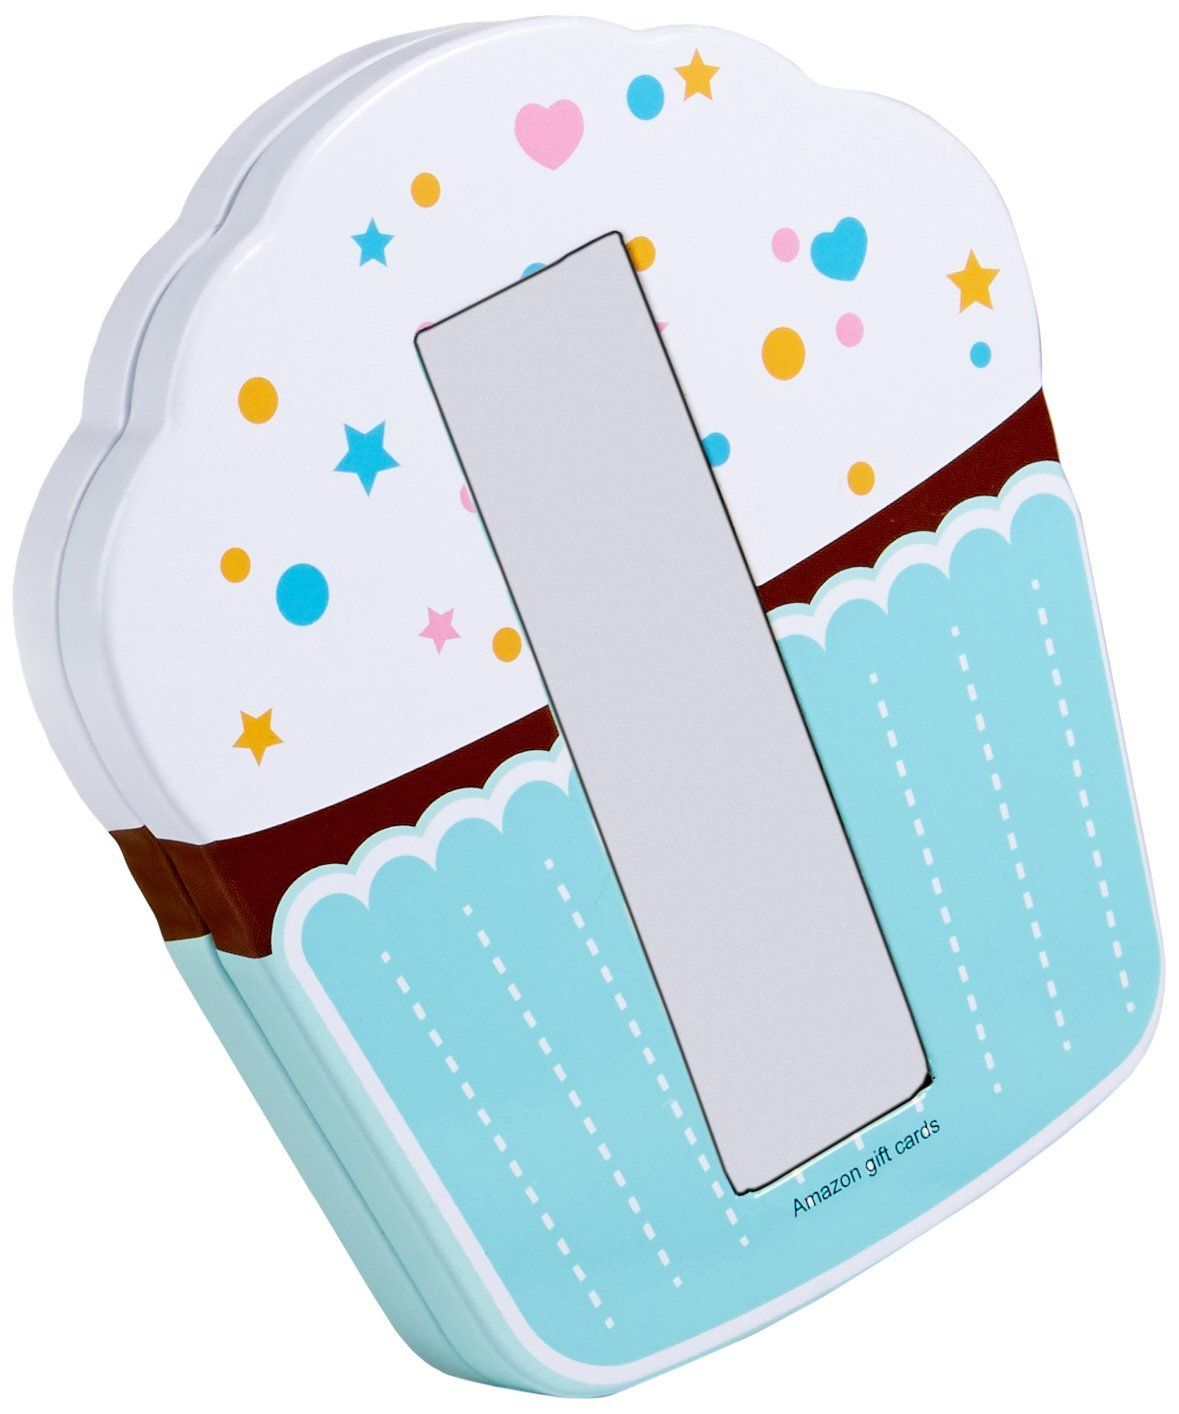 Gift card in a birthday cupcake tin gift card is nested